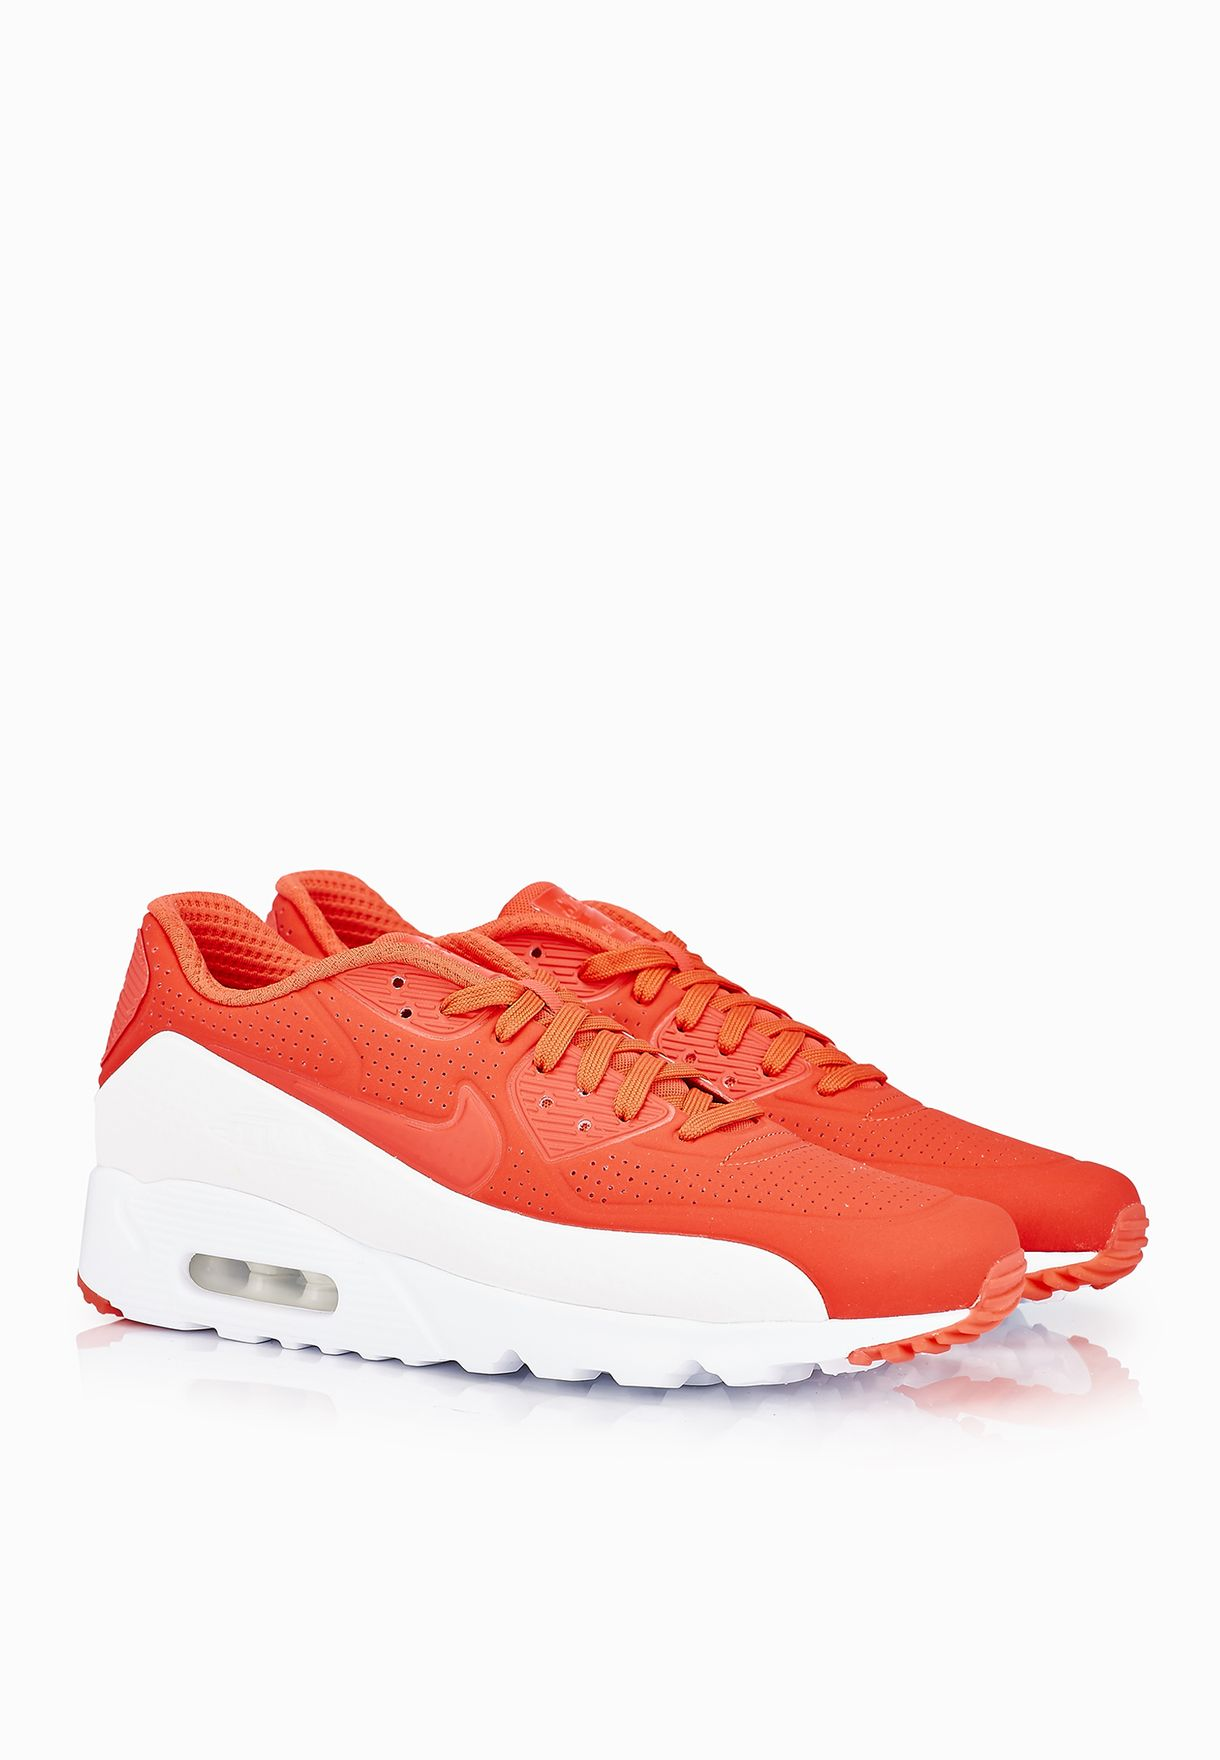 Men's Nike Air Max 90 Ultra Moire shoe in Red 819477 611